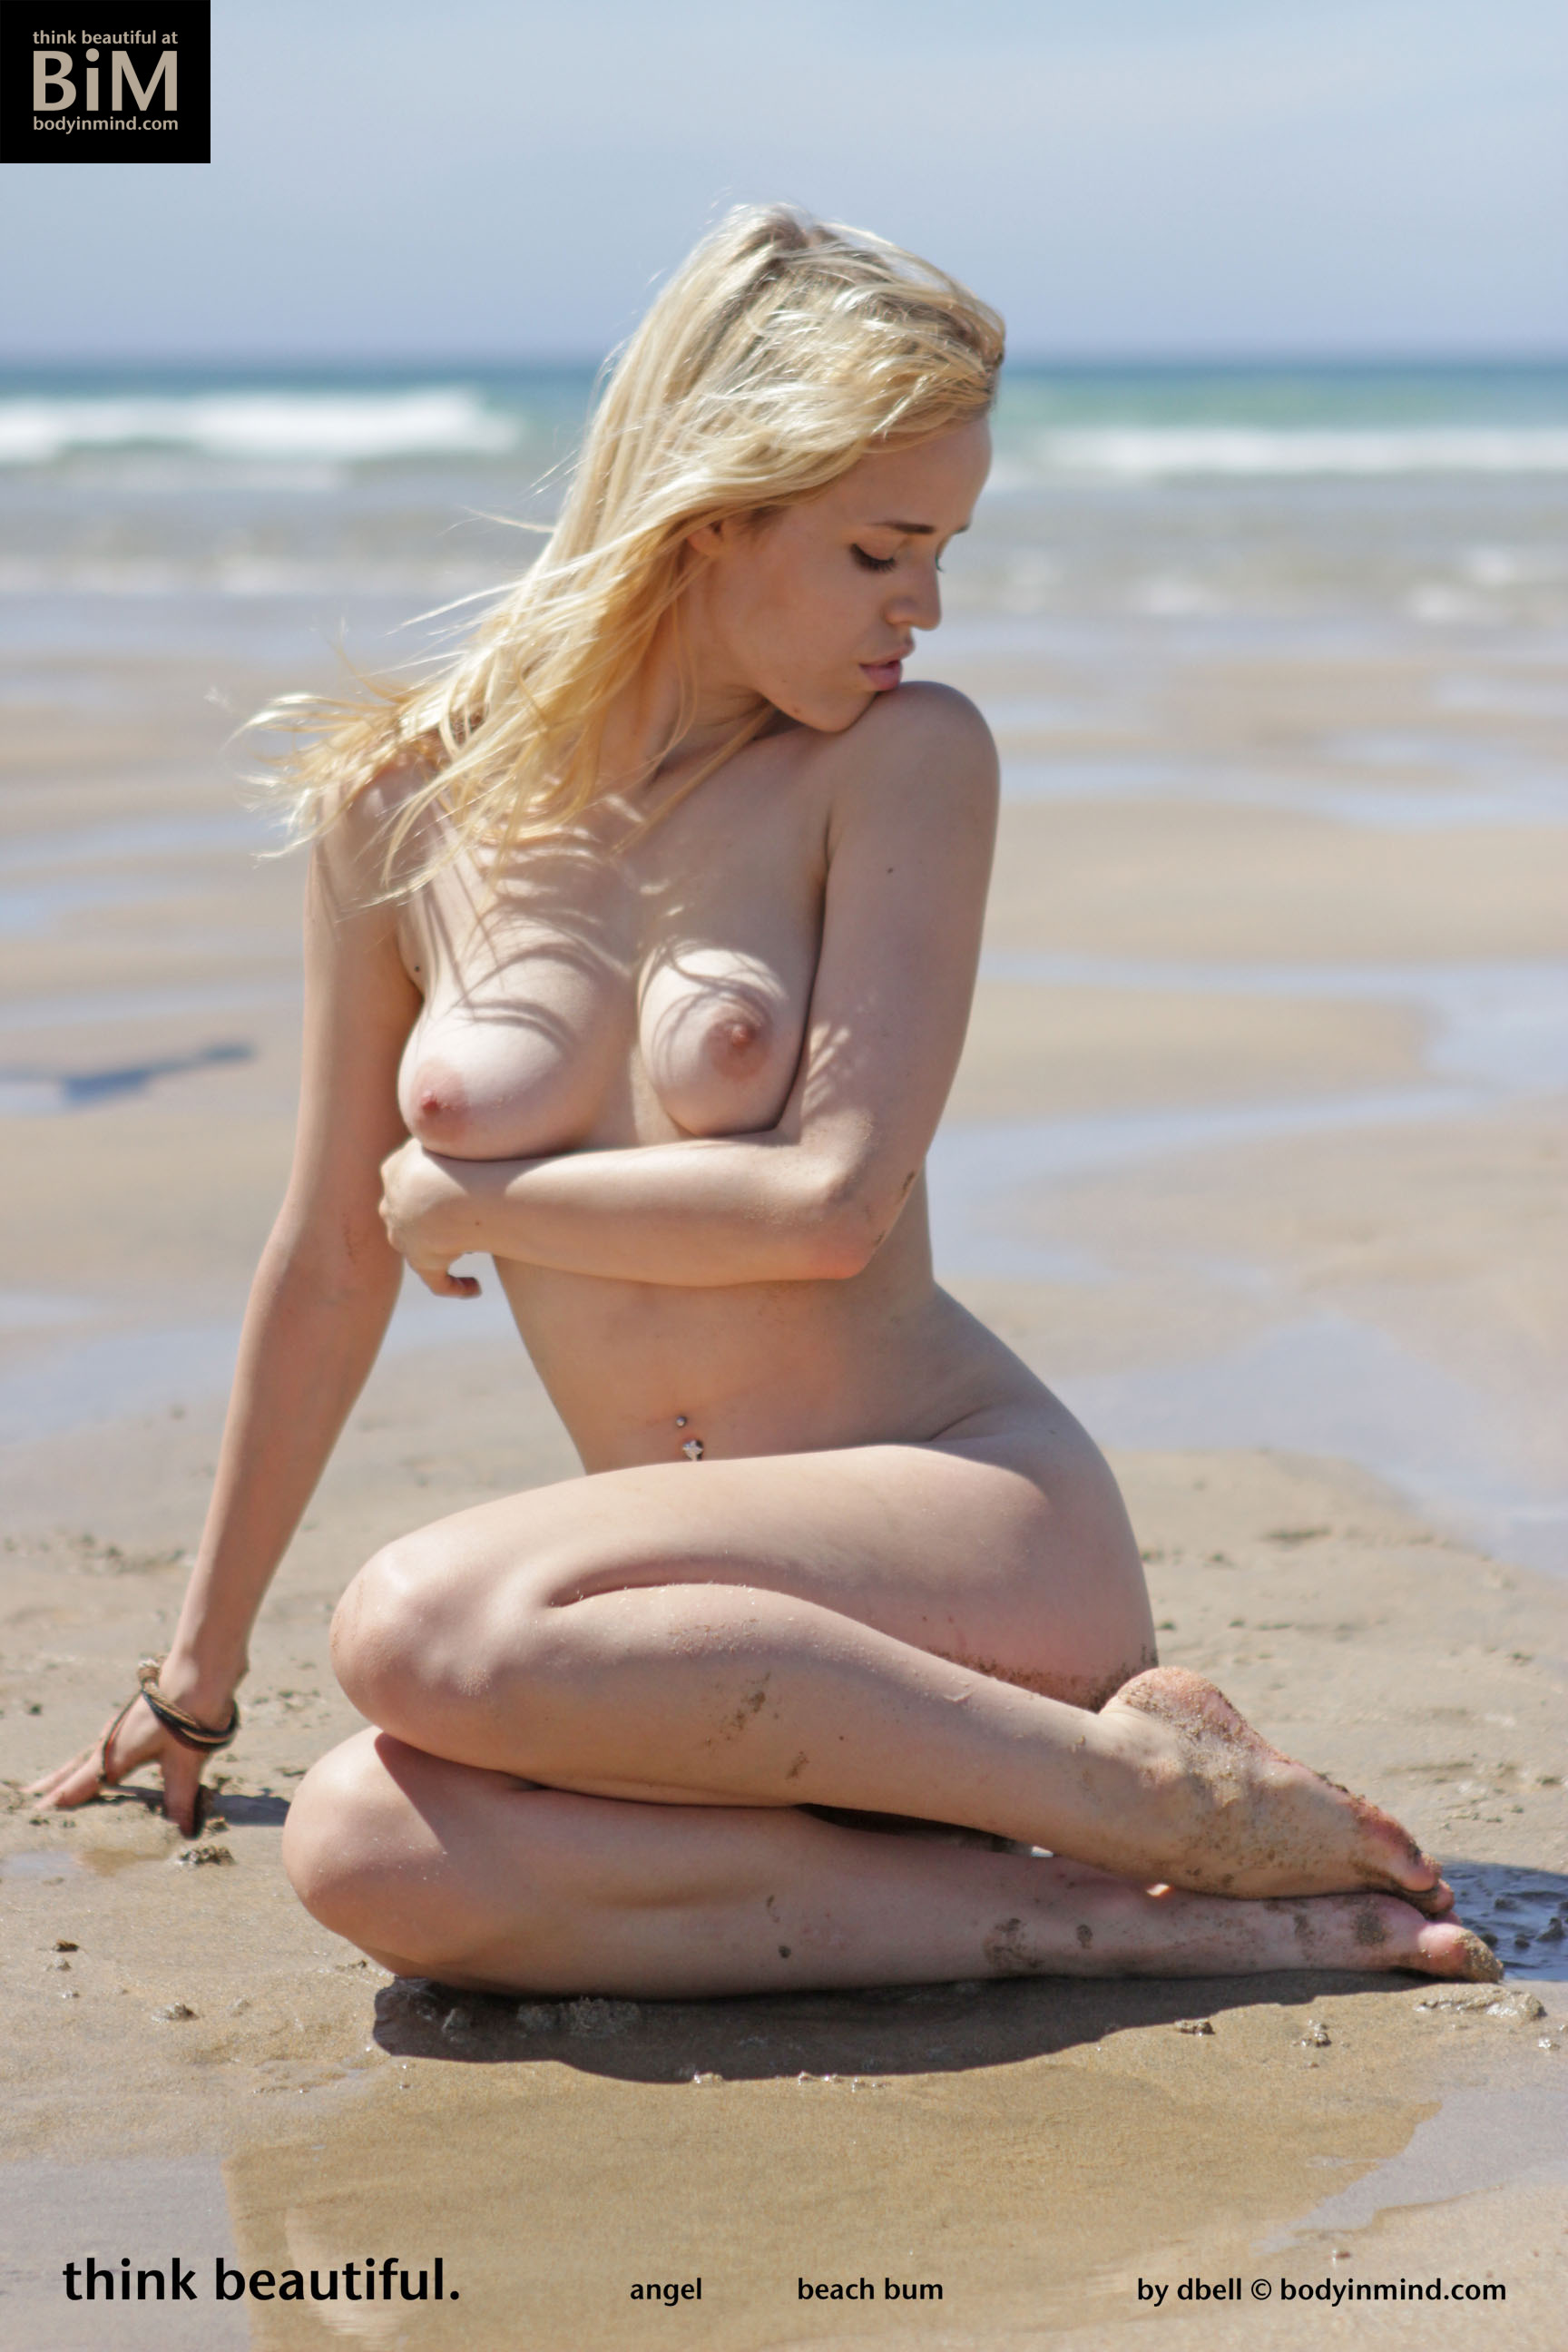 Angel Naked Boobs on the Beach for Body in Mind